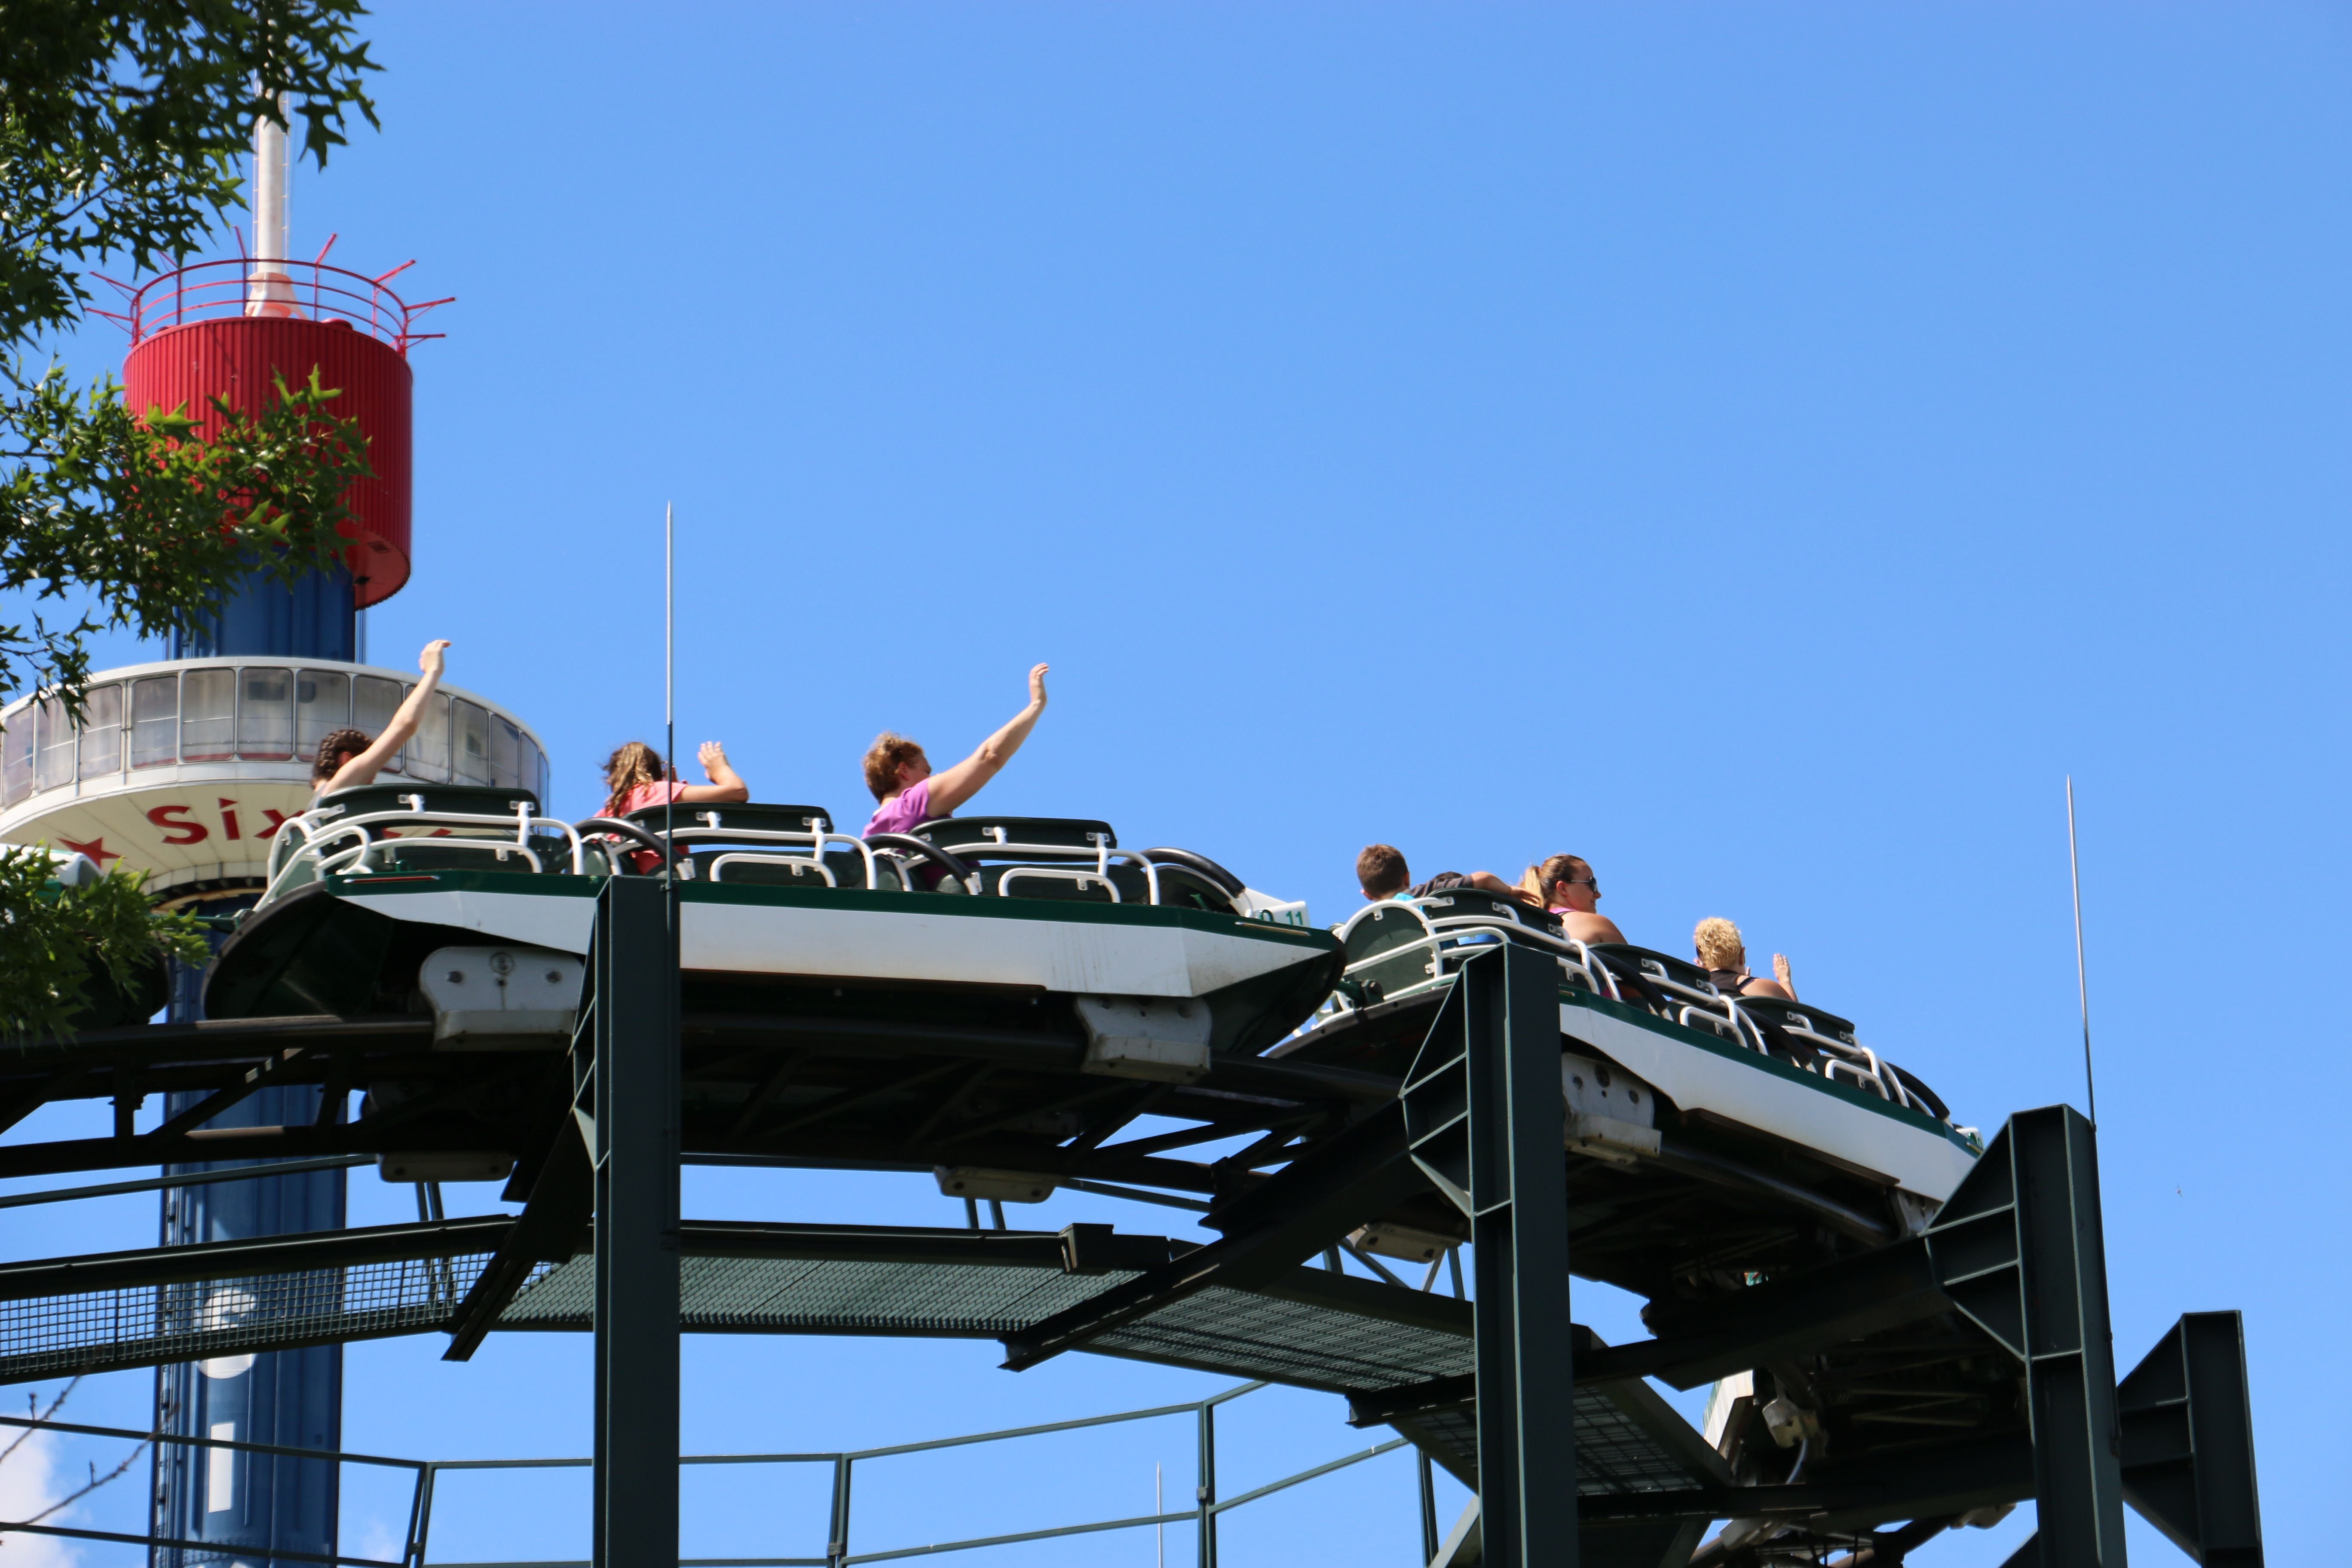 Whizzer coaster at Six Flags